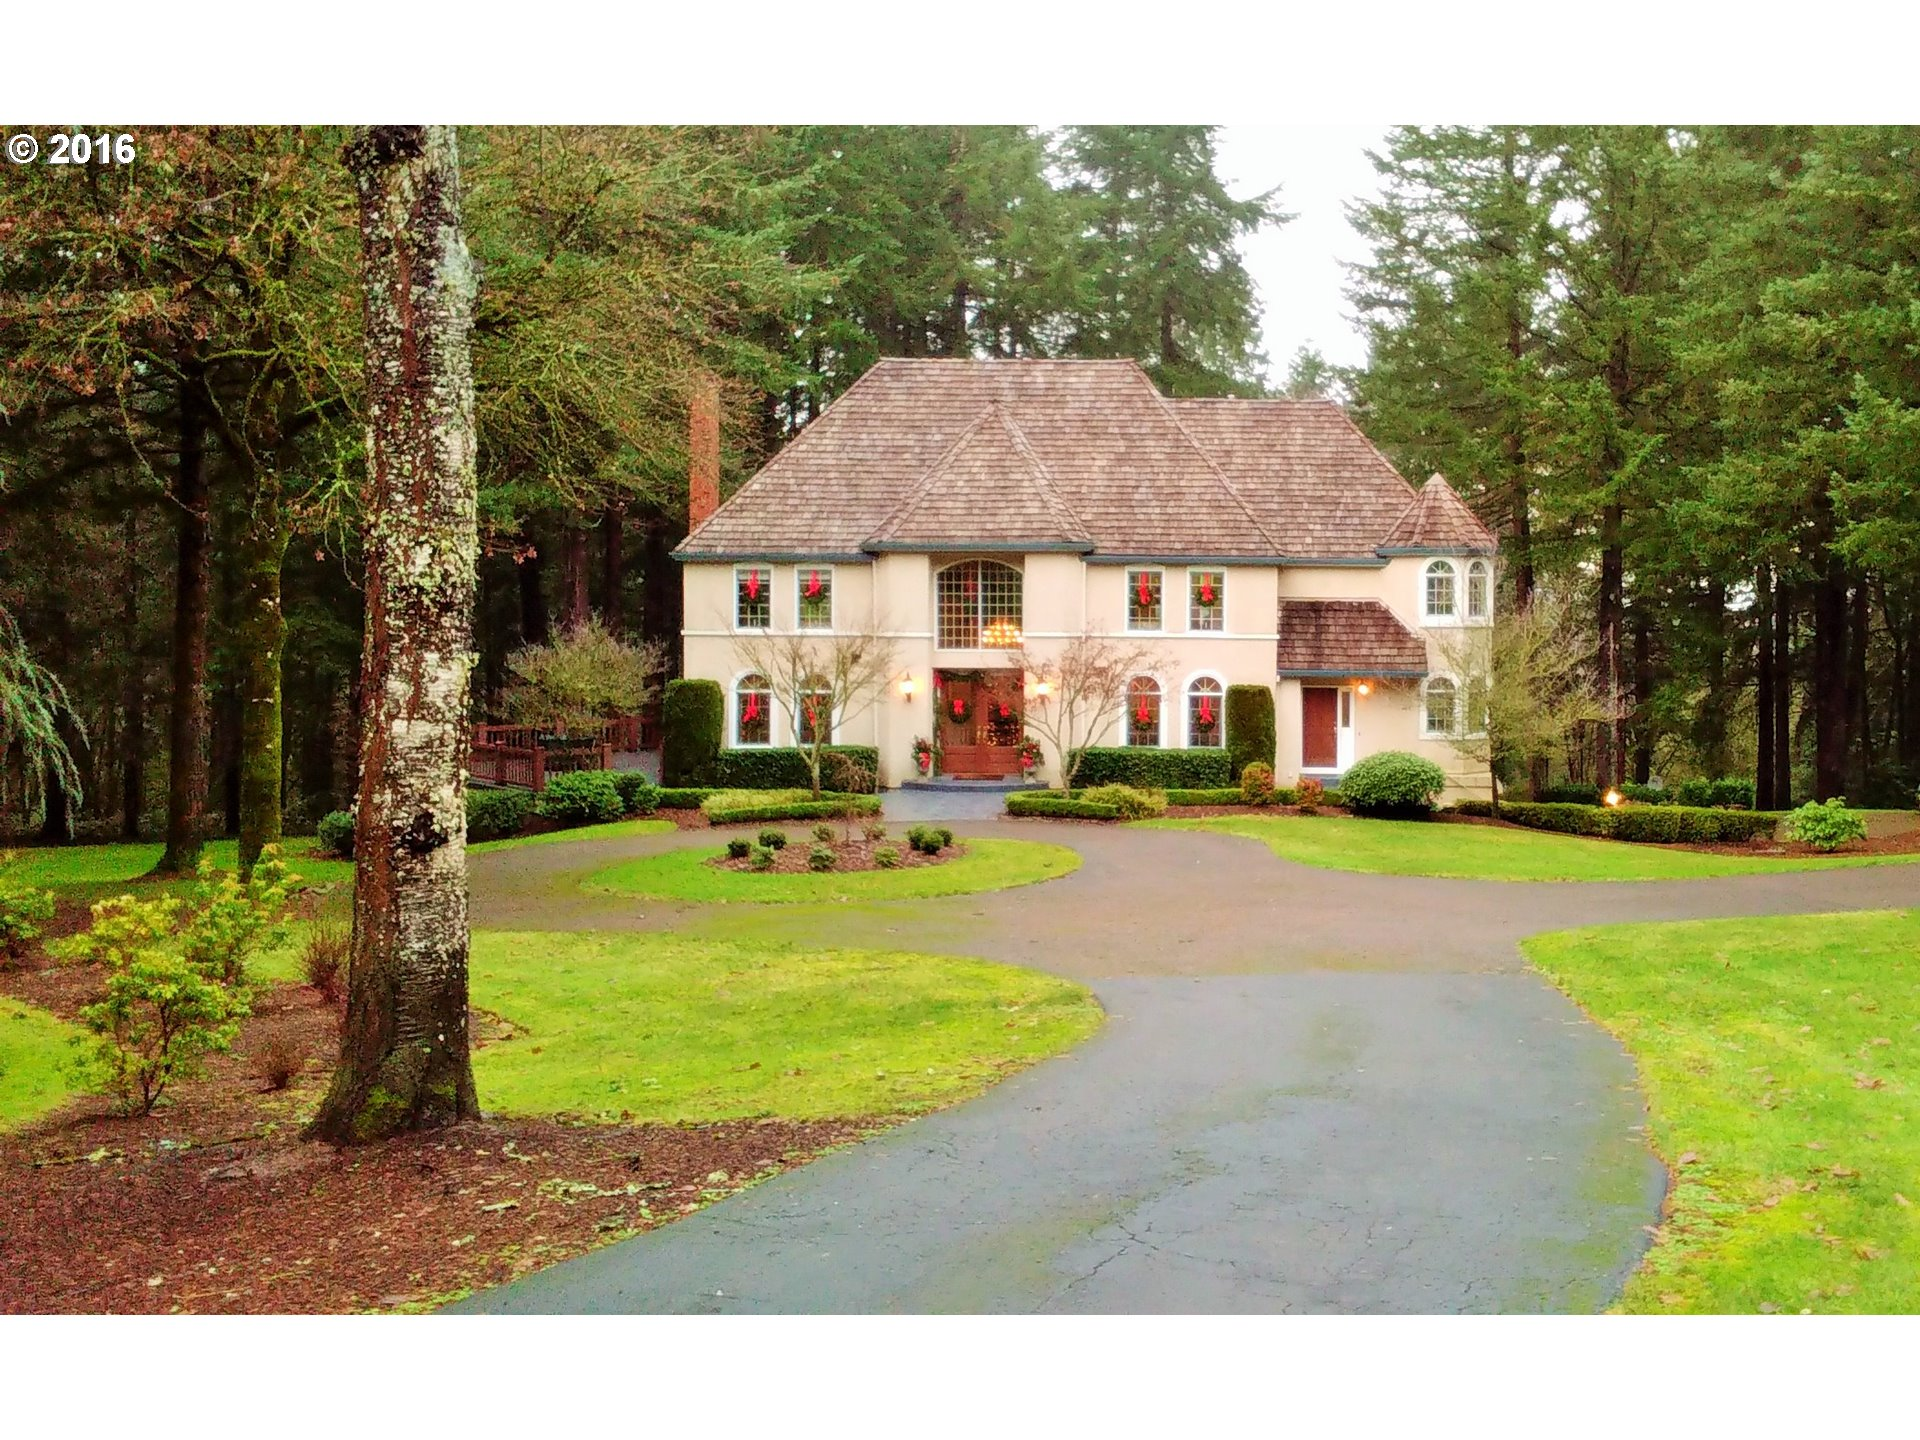 22121 SW ANTIOCH DOWNS CT, Tualatin, OR 97062